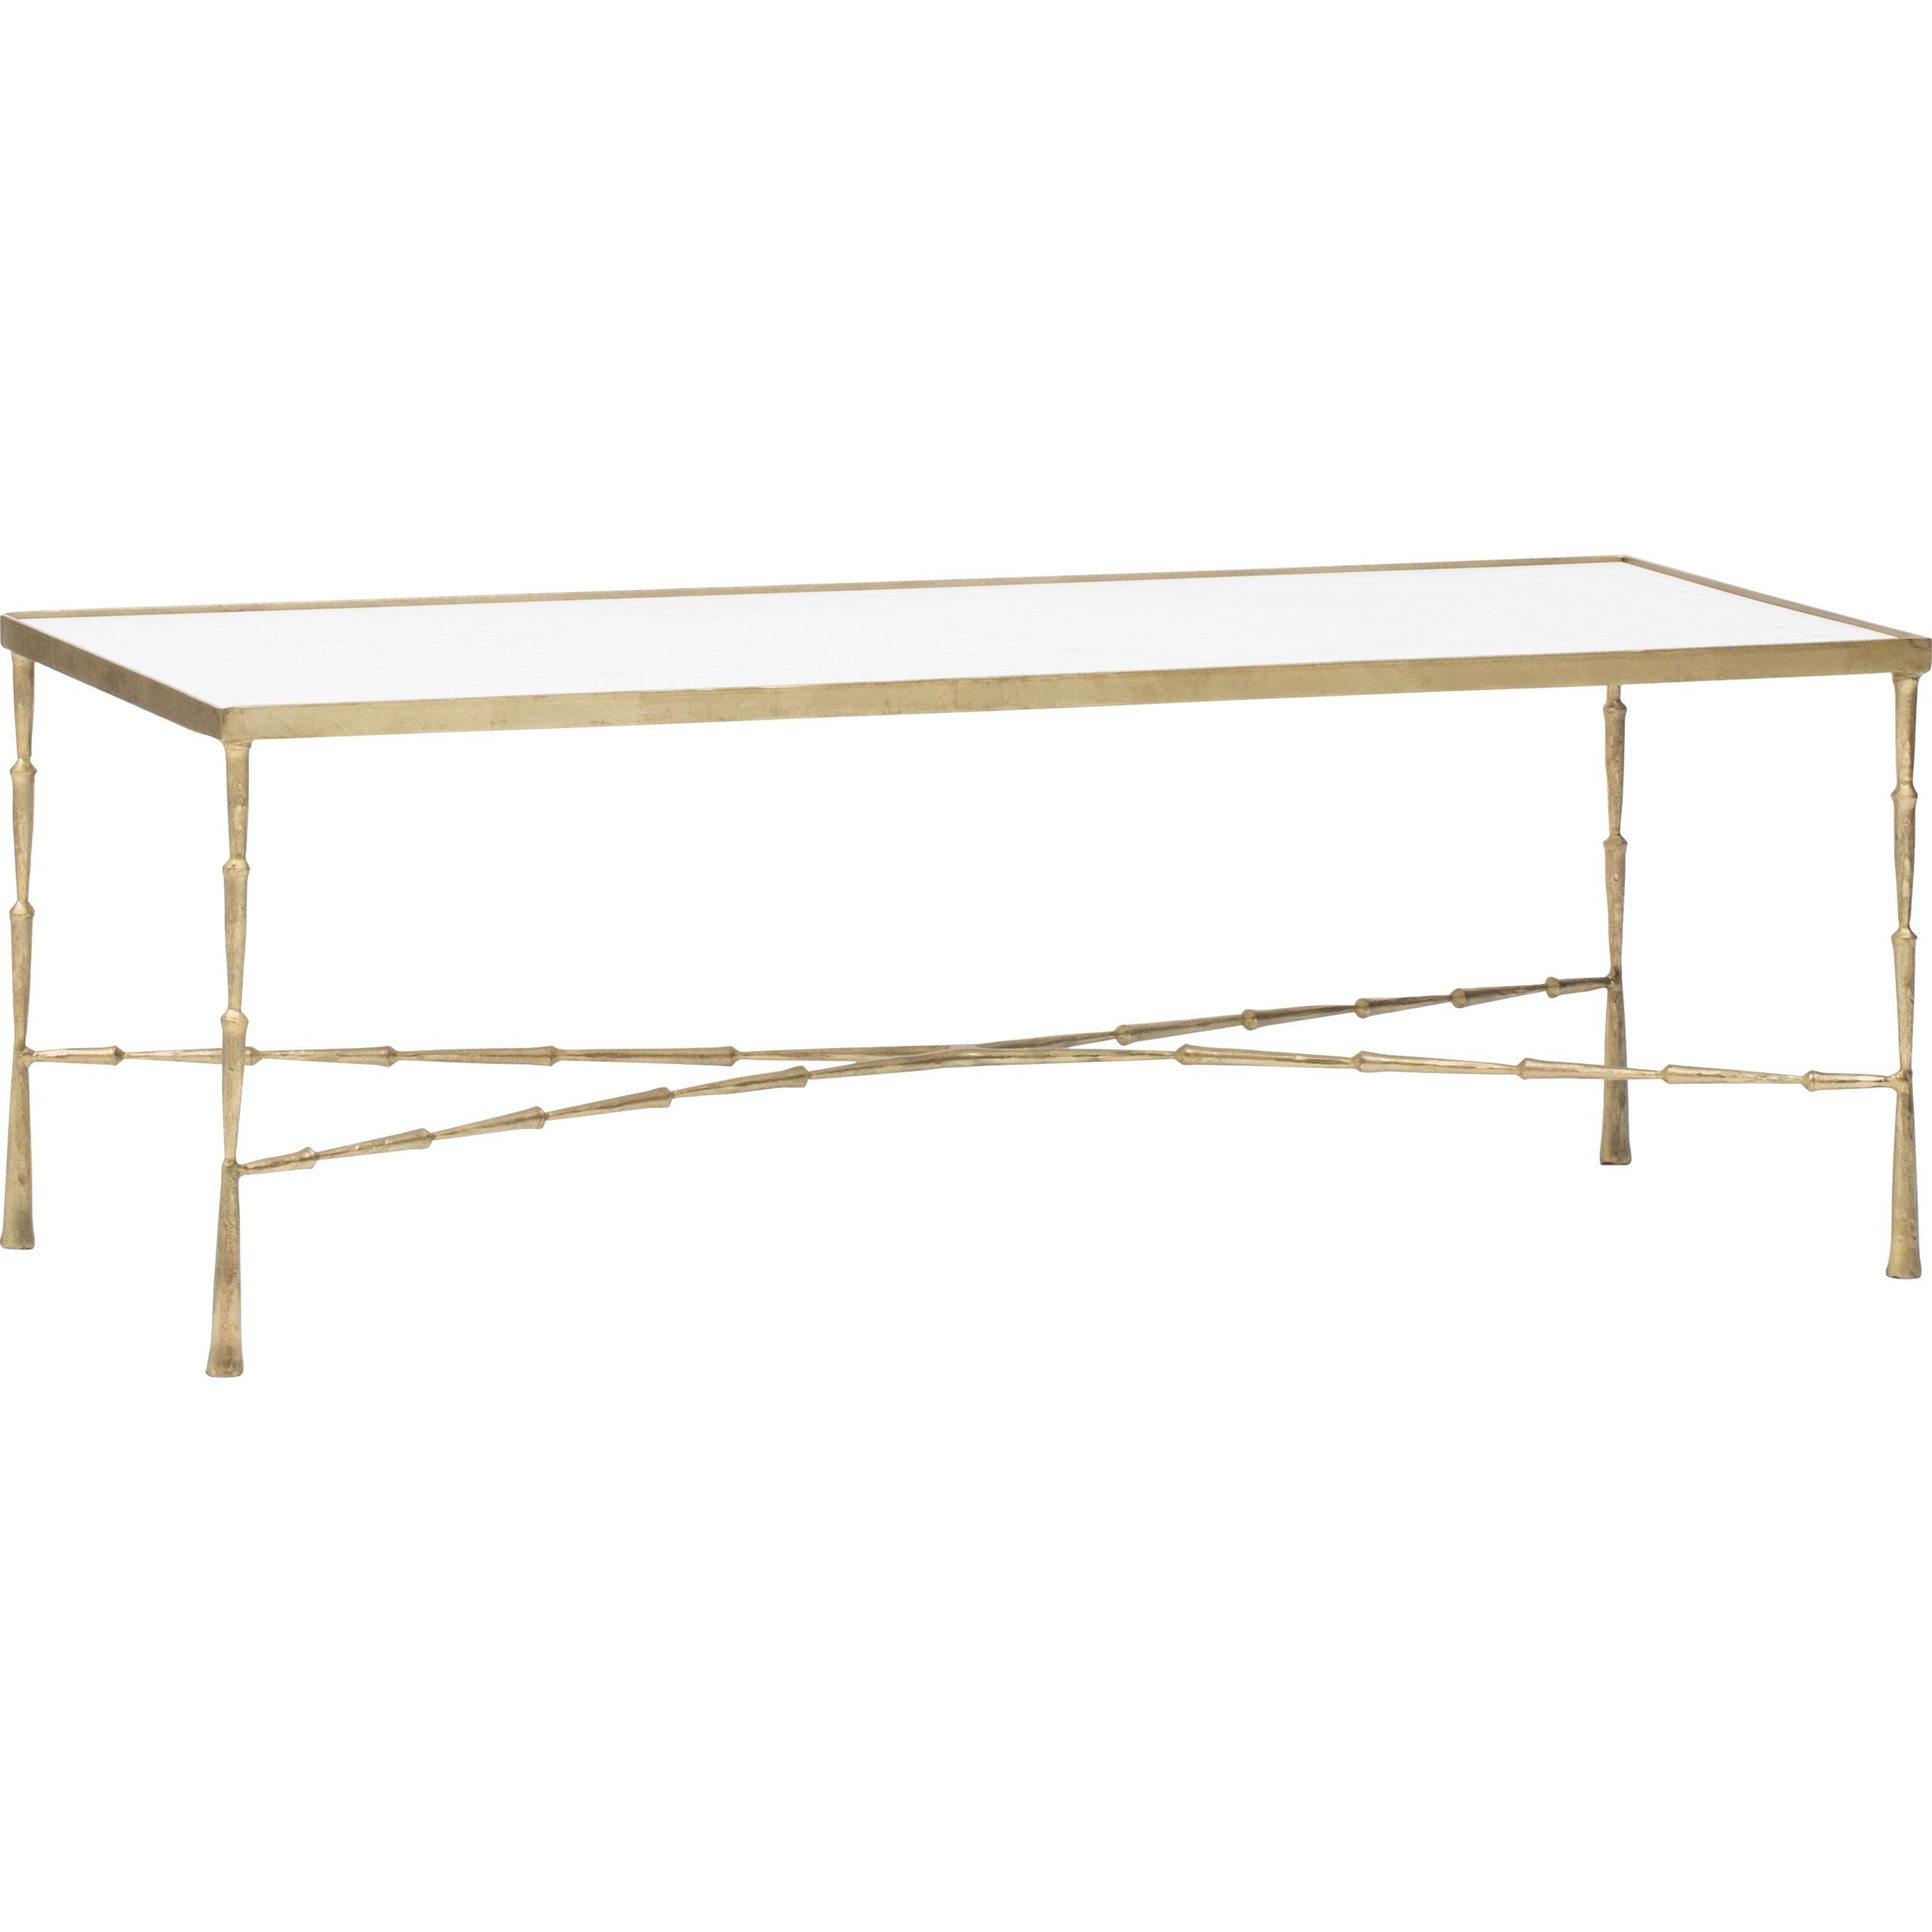 the brass and marble coffee table nate berkus has style class round gold accent with top that will make stand out your living room family wide threshold wood ashley furniture set